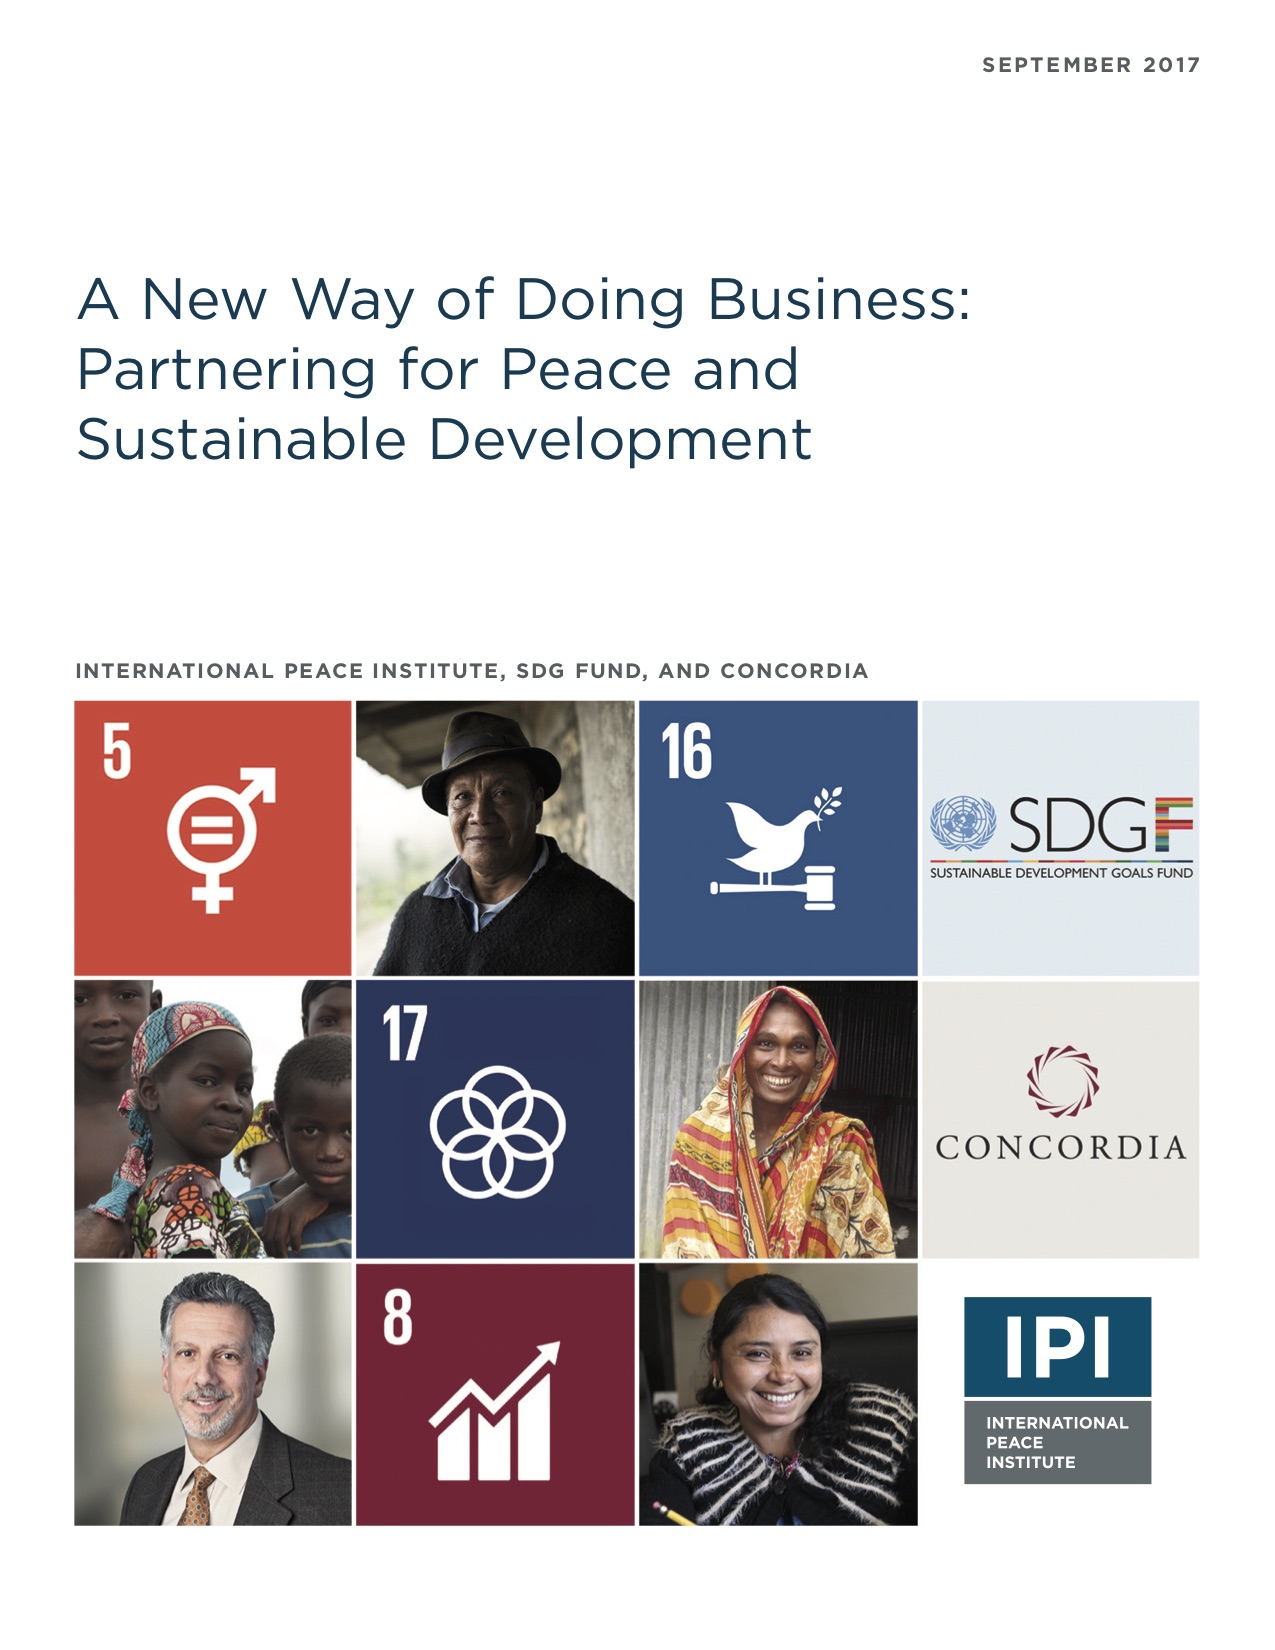 A New Way of Doing Business: Partnering for Peace and Sustainable Development